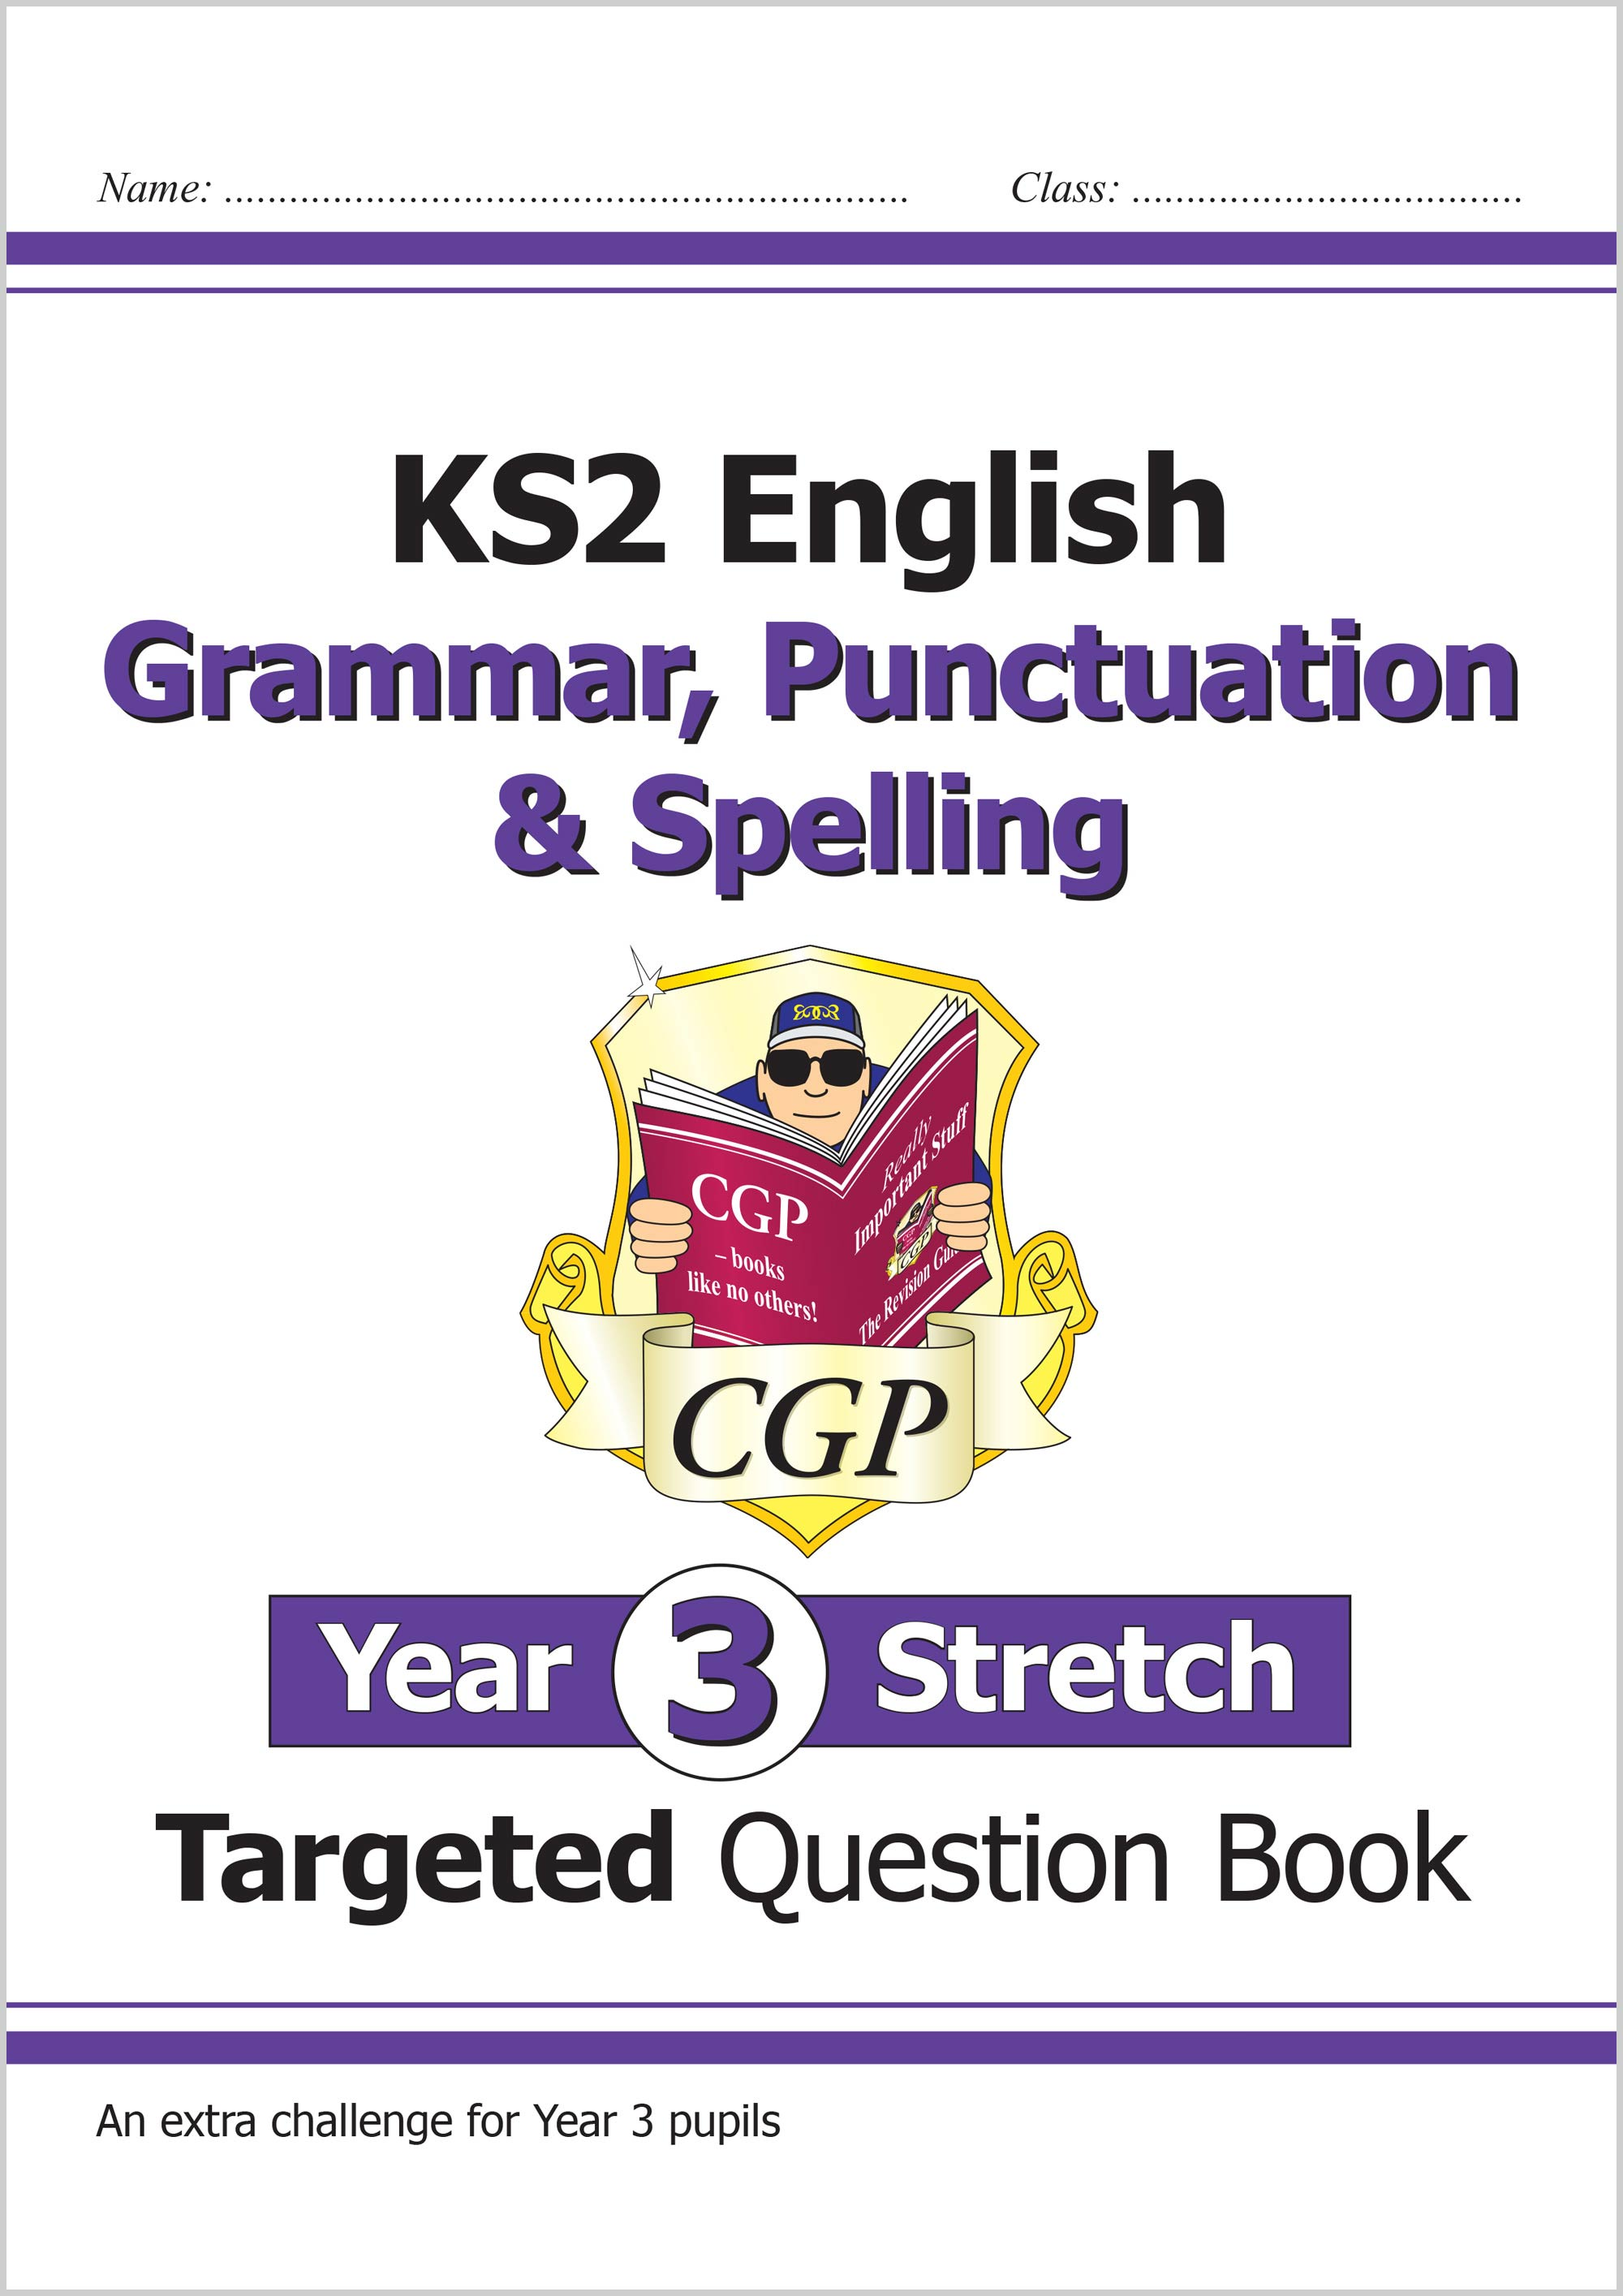 EG3HW21 - New KS2 English Targeted Question Book: Challenging Grammar, Punctuation & Spelling - Year